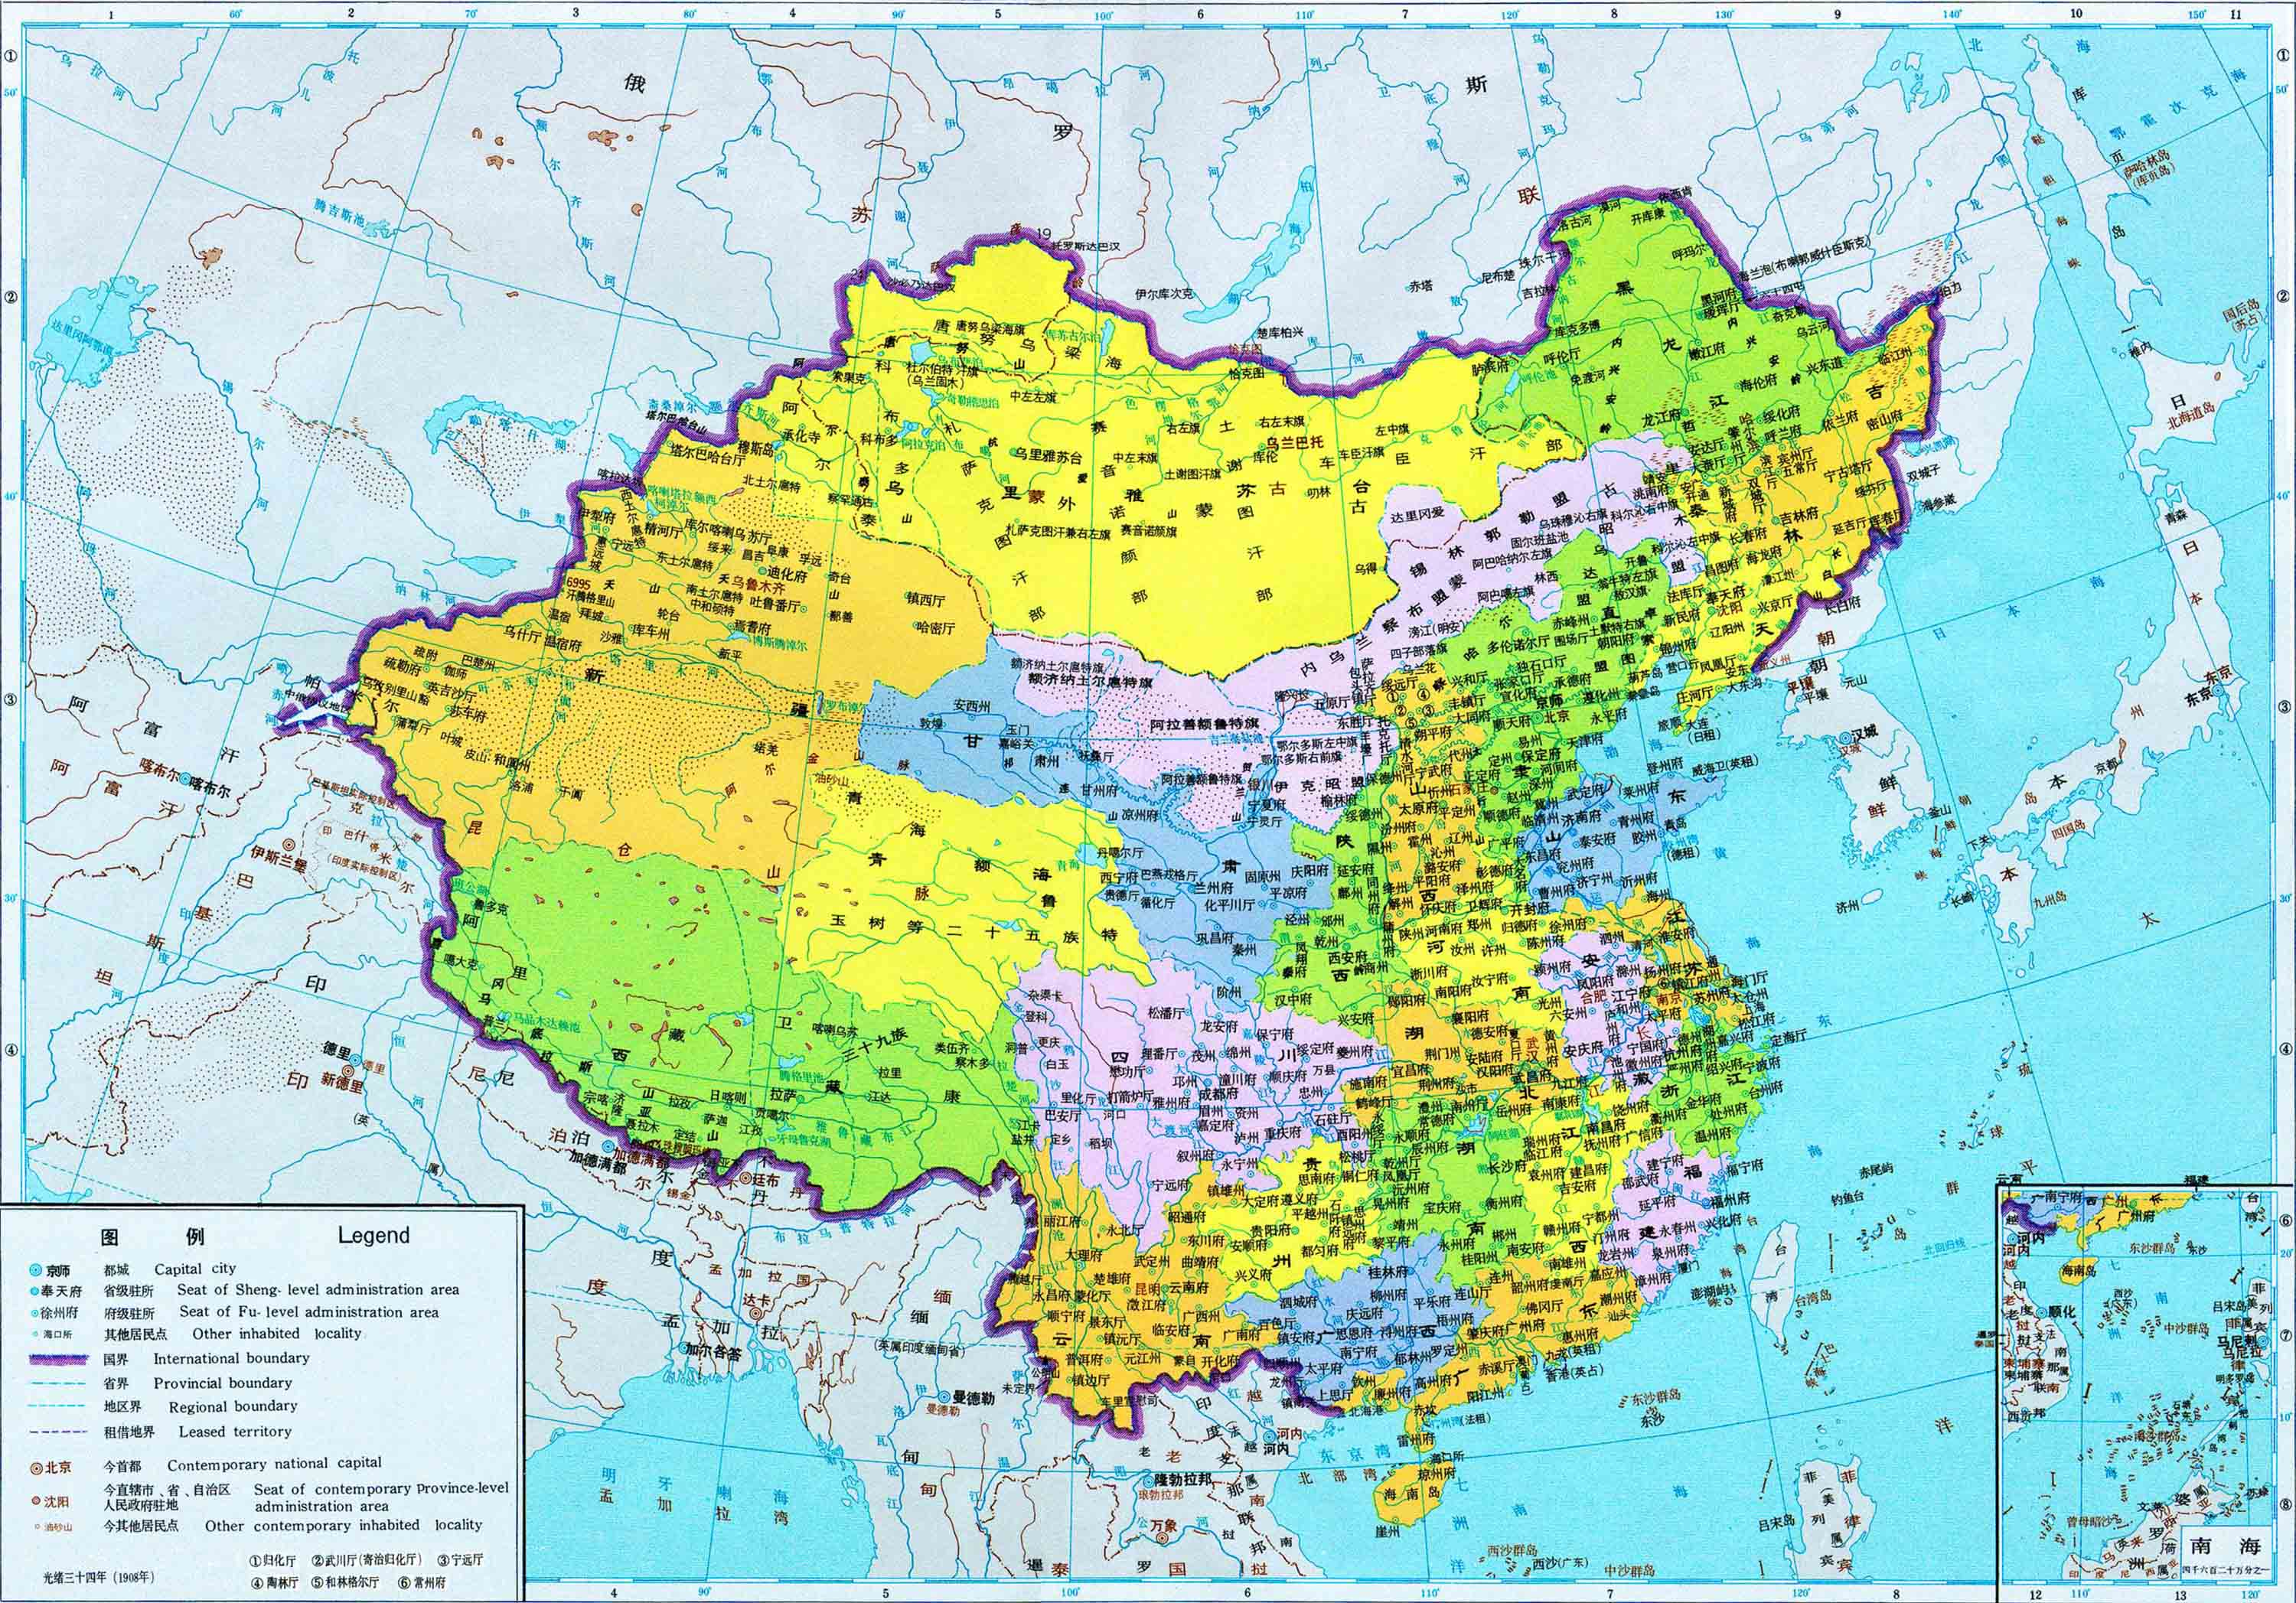 The Qing Dynasty in 1908 - Full size